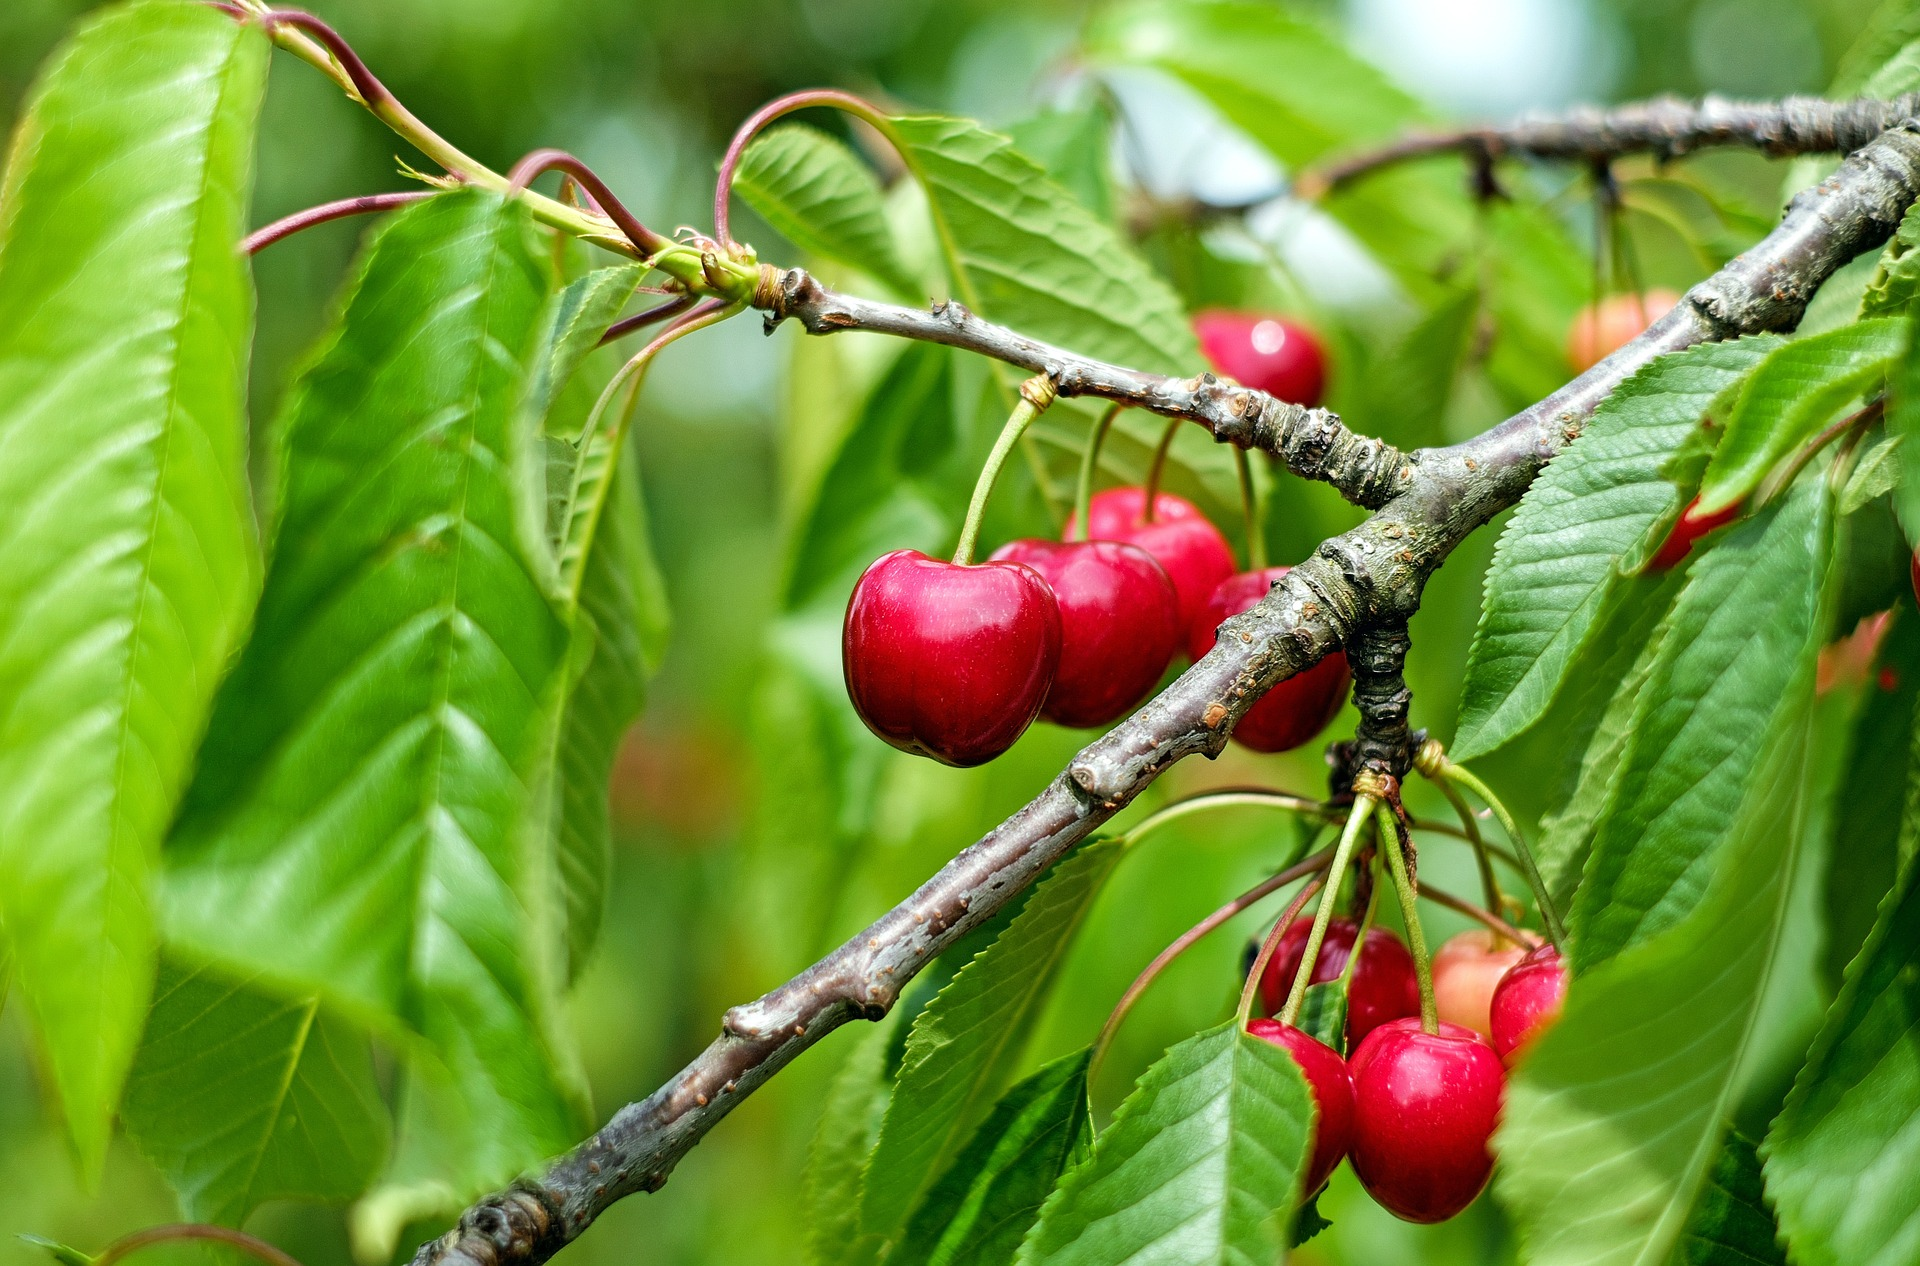 Planting sweet cherries in the fall - we are doing the right thing